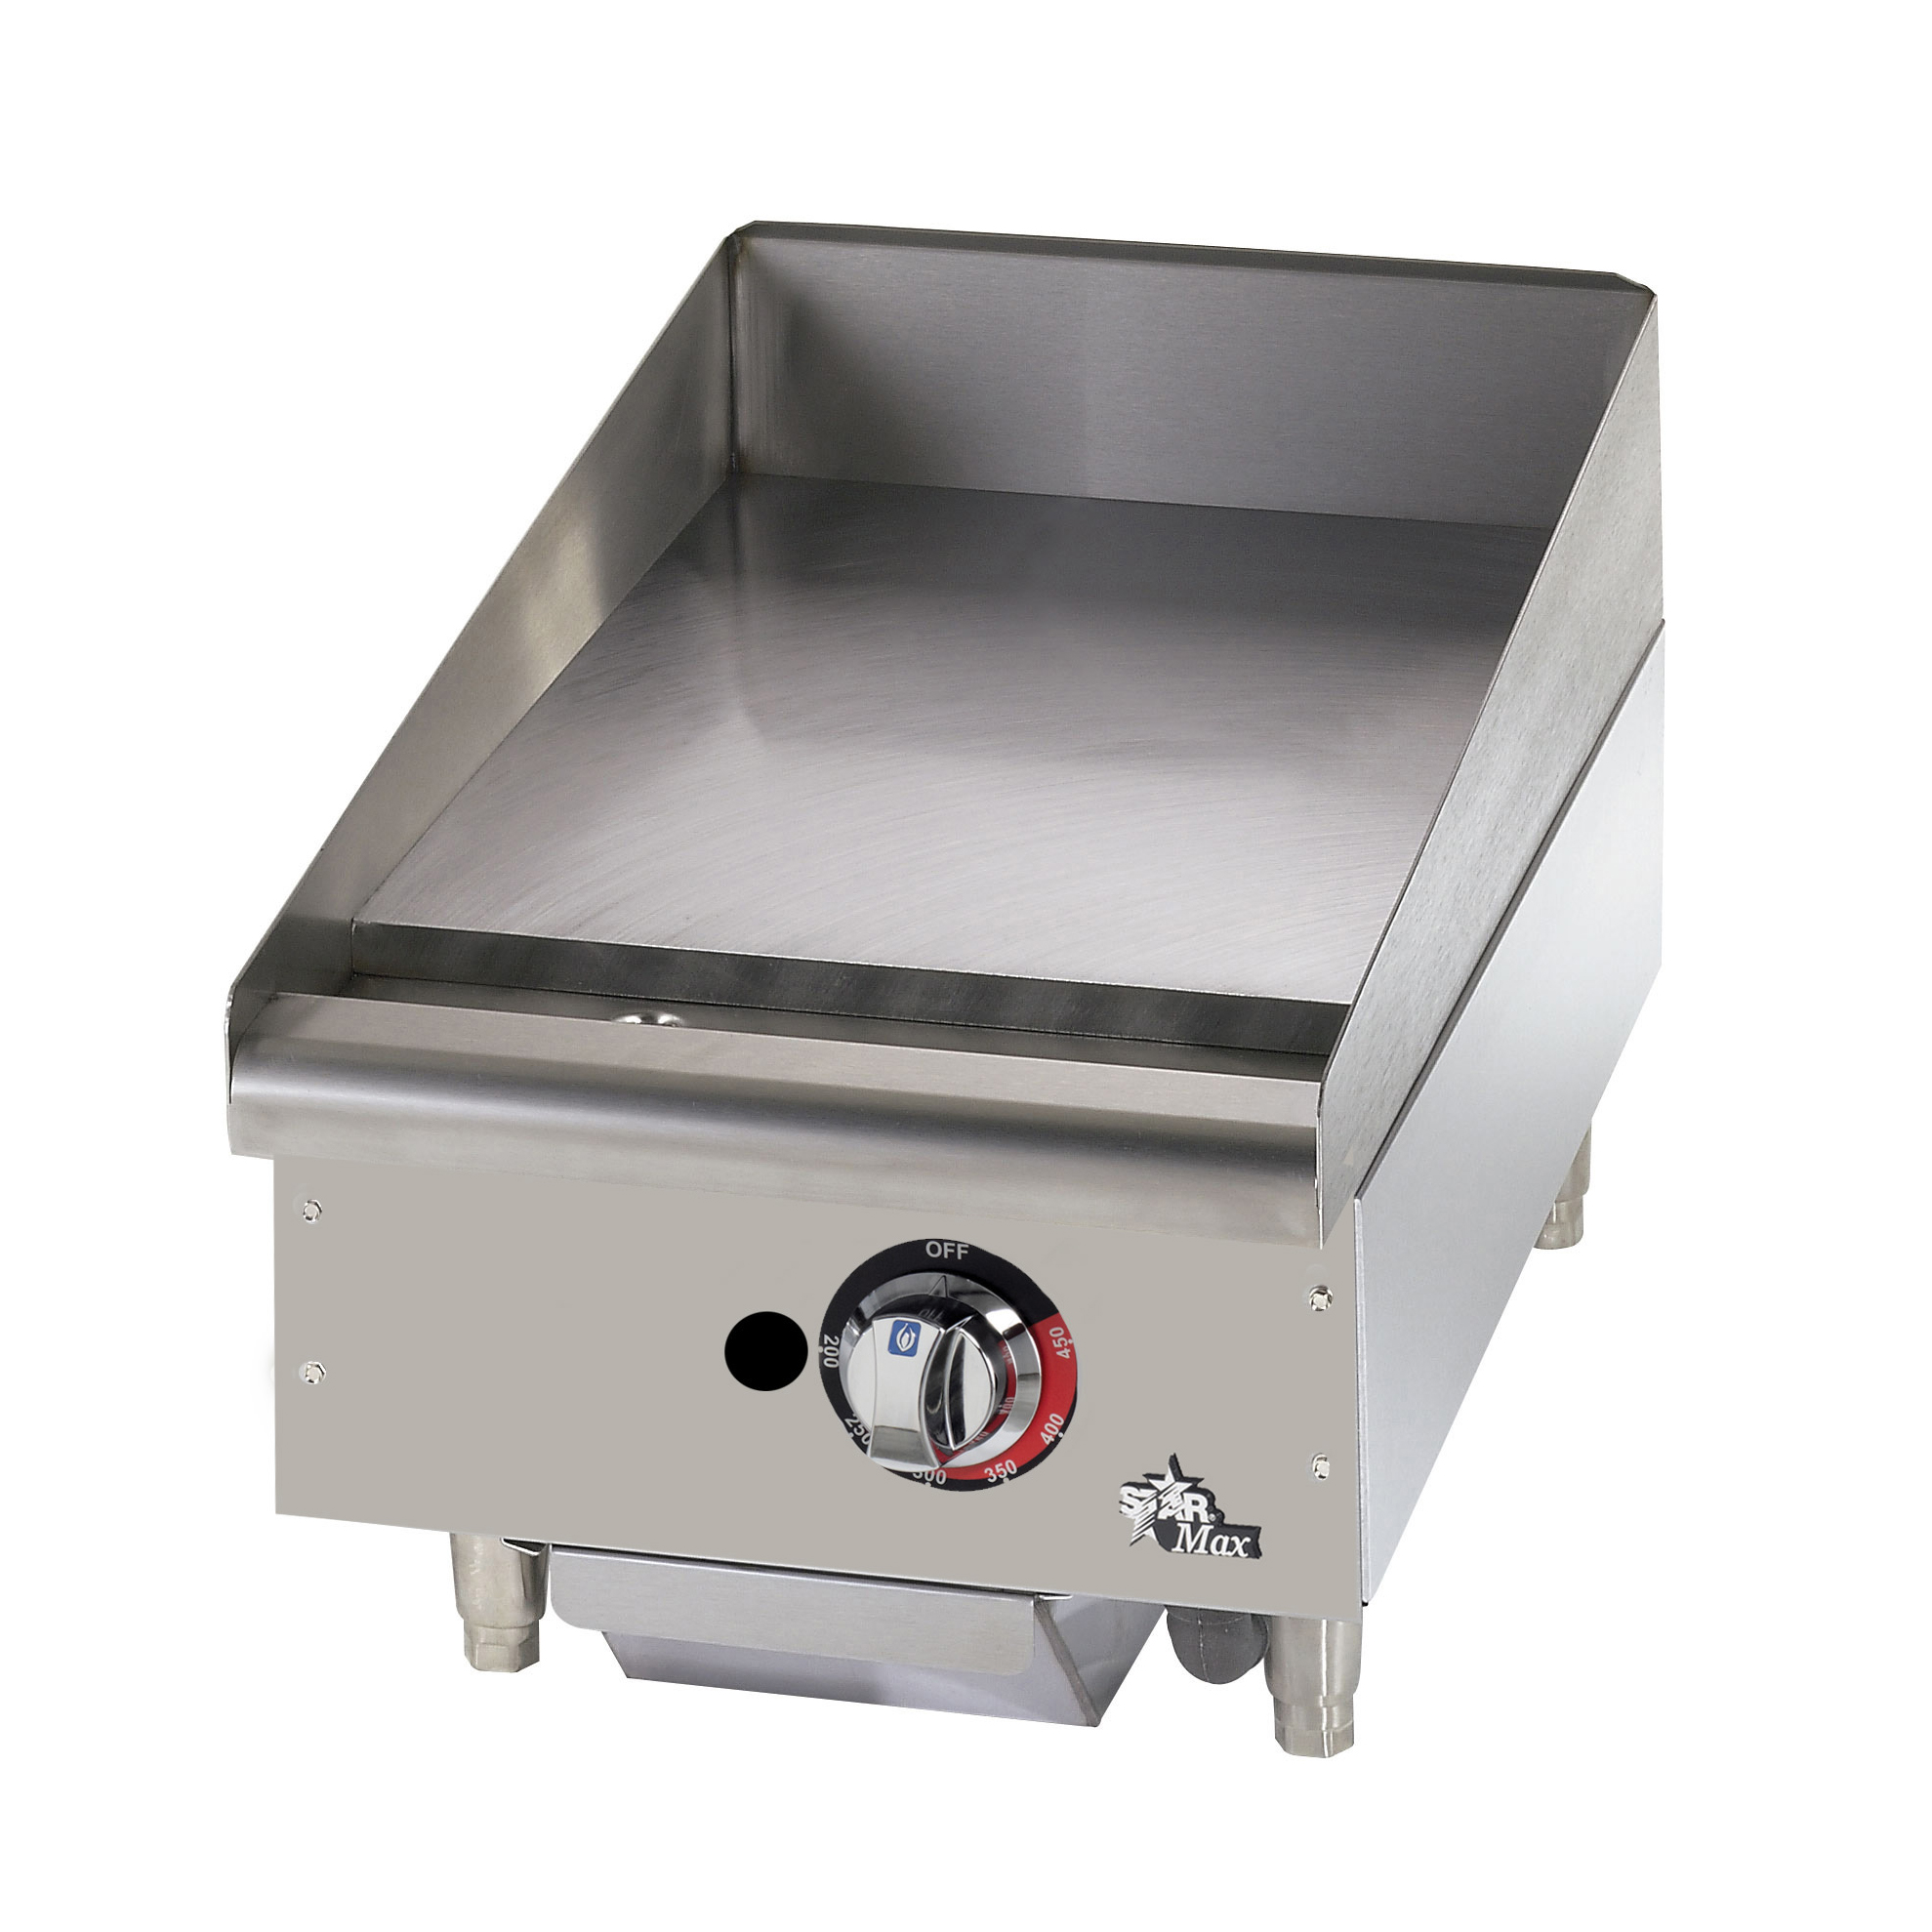 Star 615TF griddle, gas, countertop